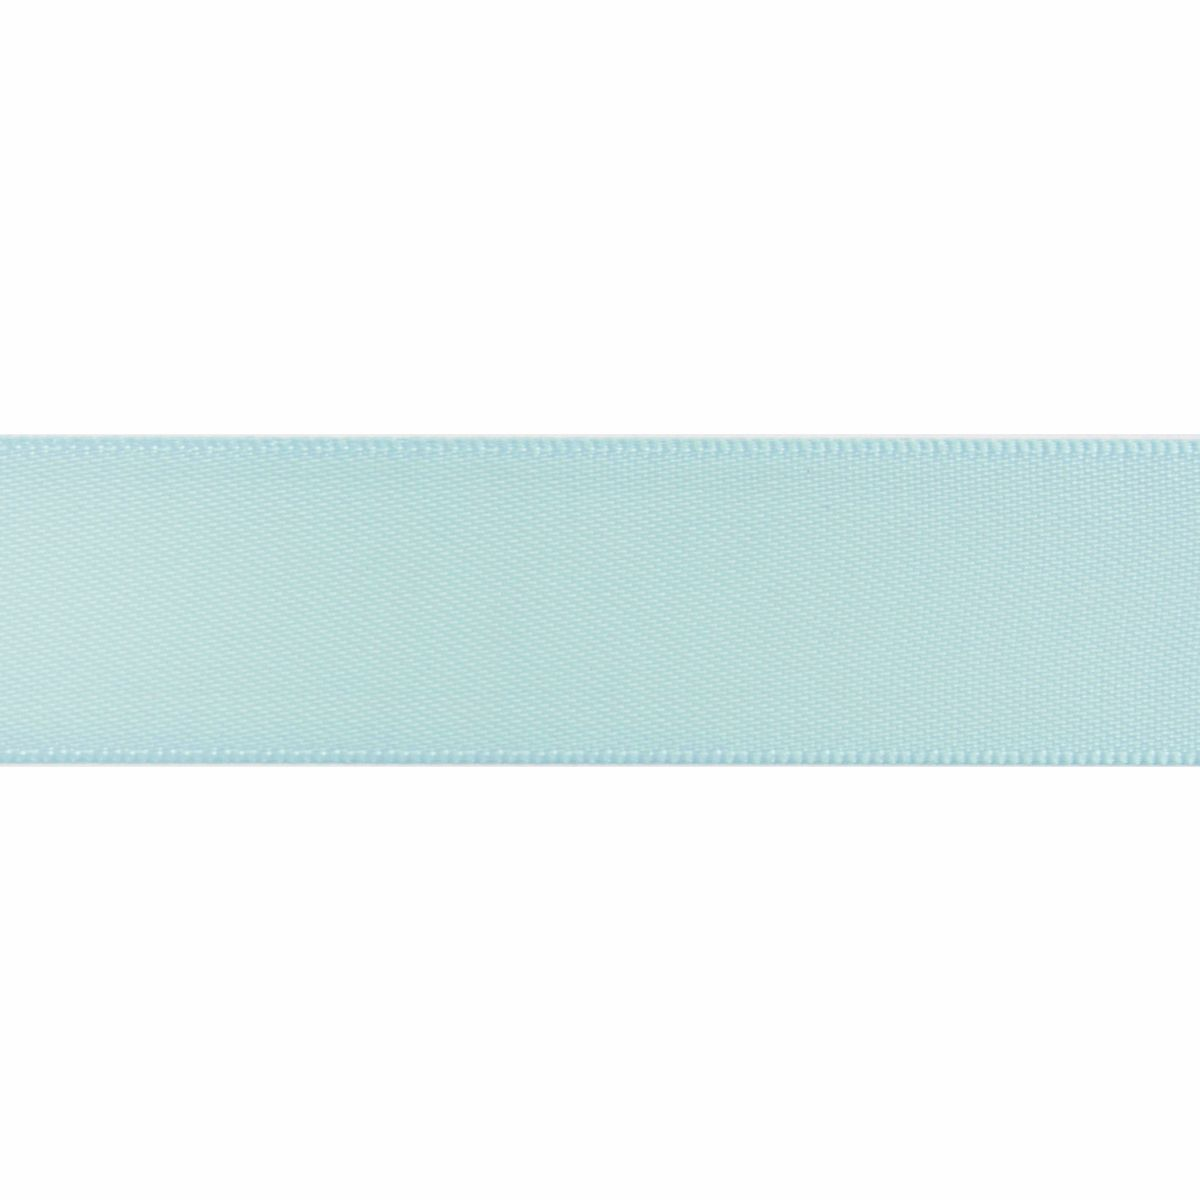 Light Blue Double Satin Ribbon 5m rolls from 3mm to 36mm wide